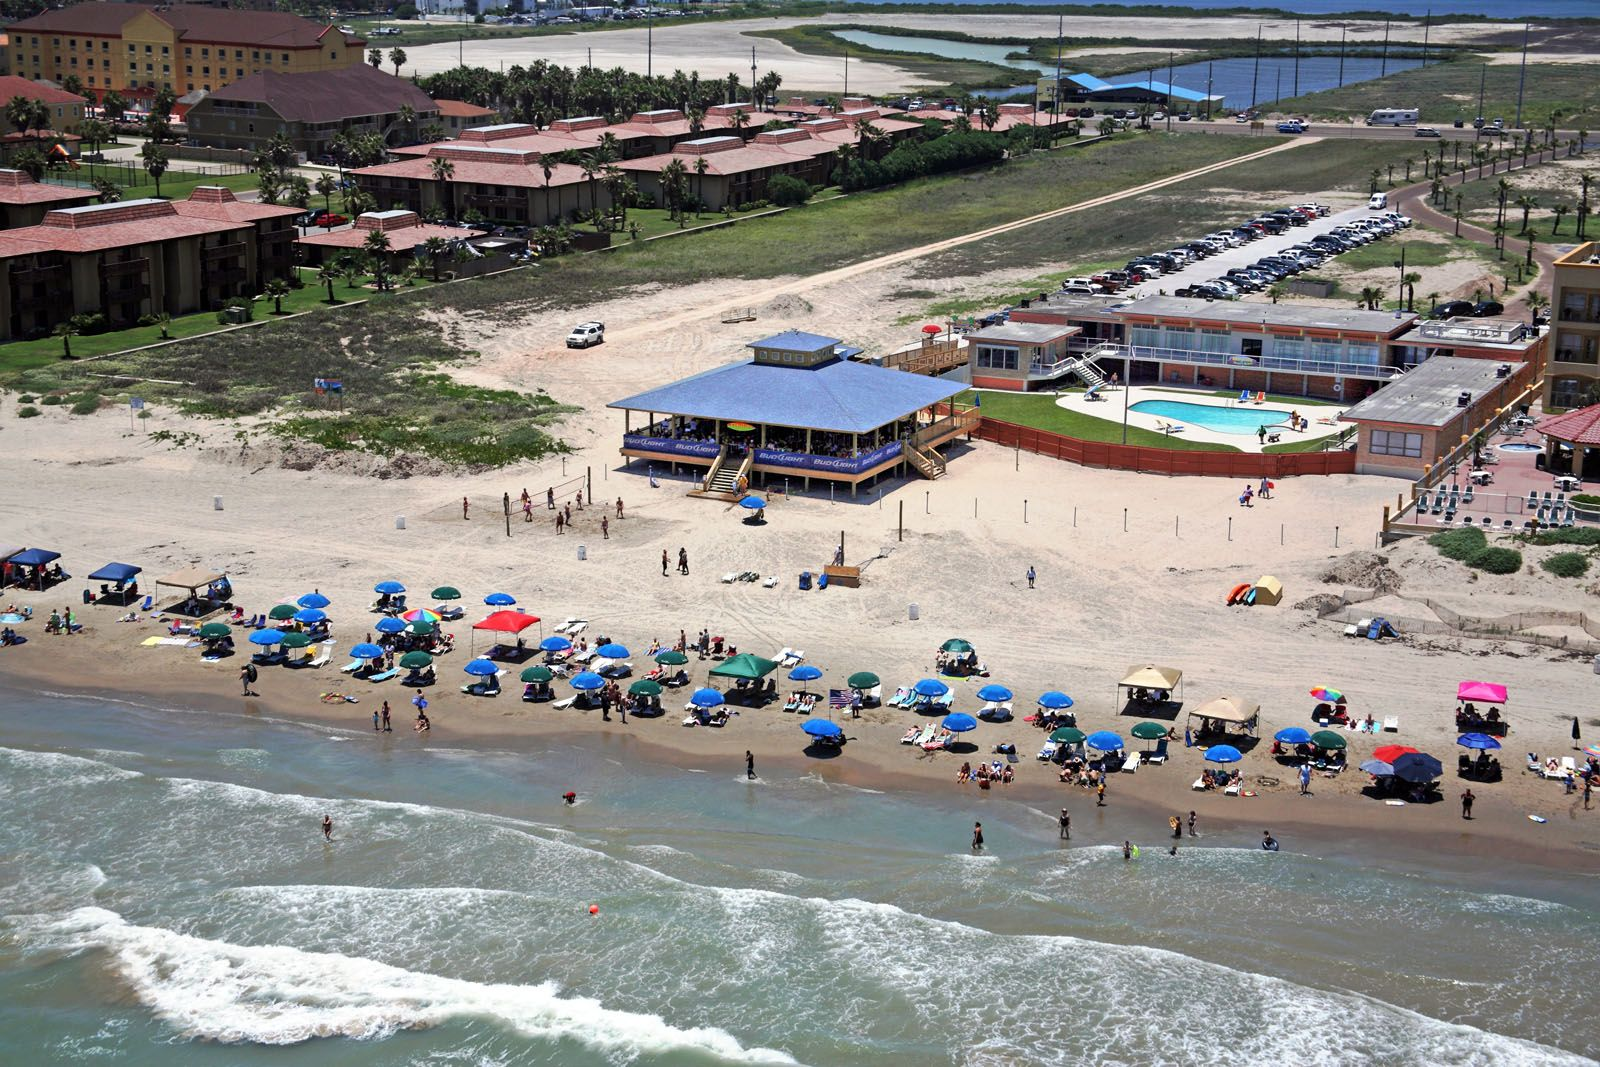 Clayton S Beach Bar South Padre Island Tx The Gest In Texas Semi Nsfw Includes Body Paint Pics